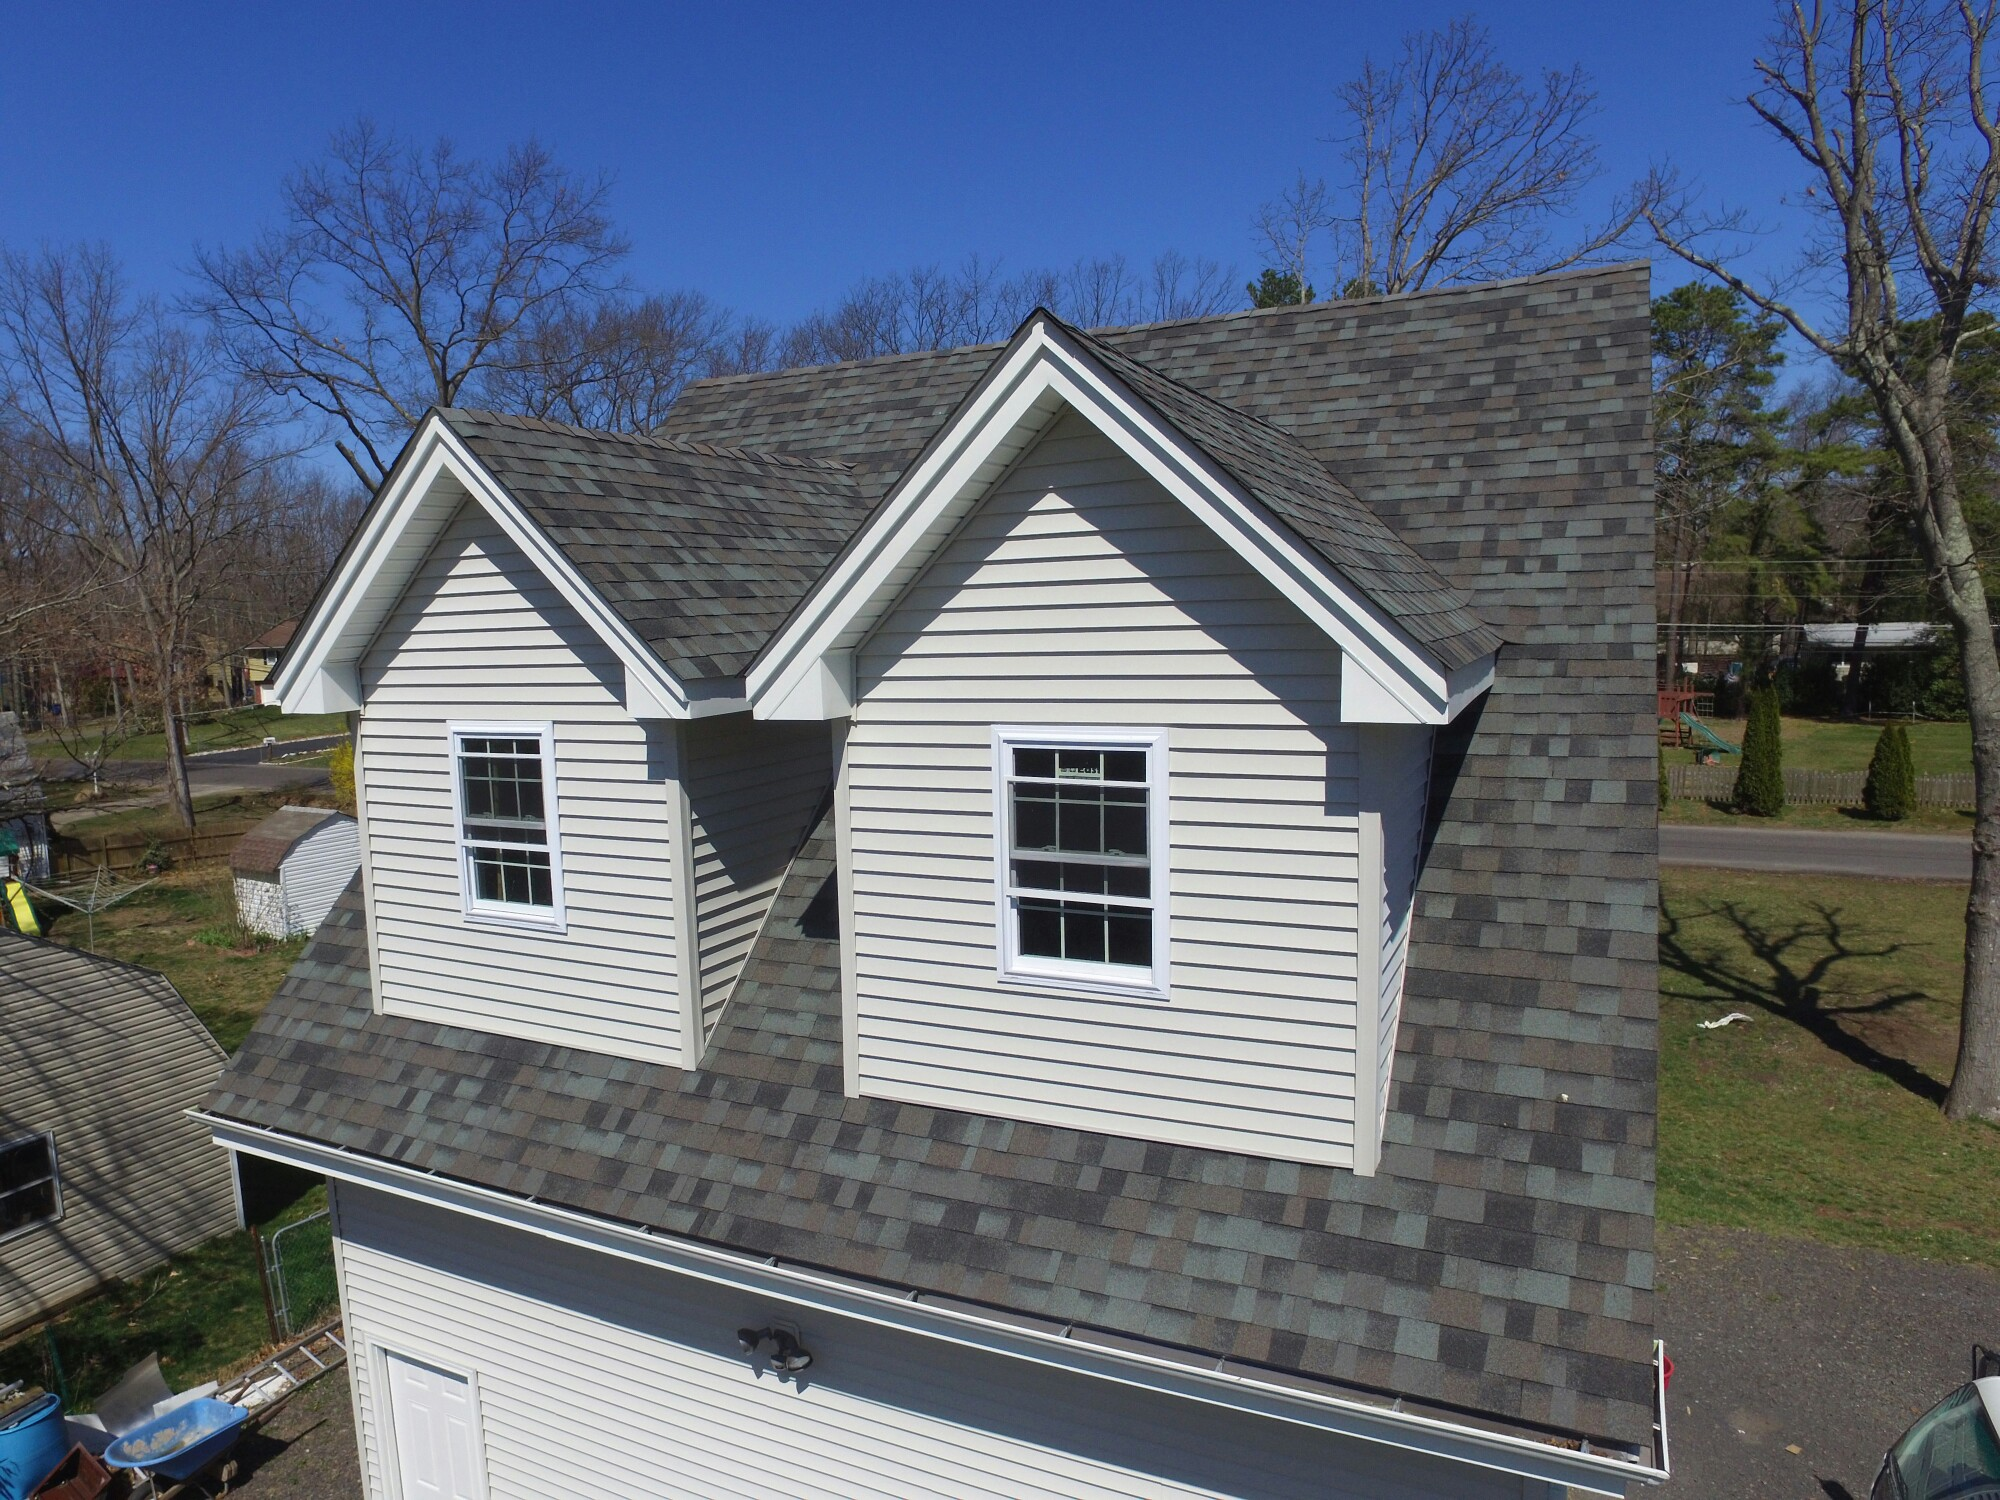 Good Owens Corning TruDefinition Duration Roofing System With Storm Cloud  Designer Shingles By Duane Mainardi Builders,